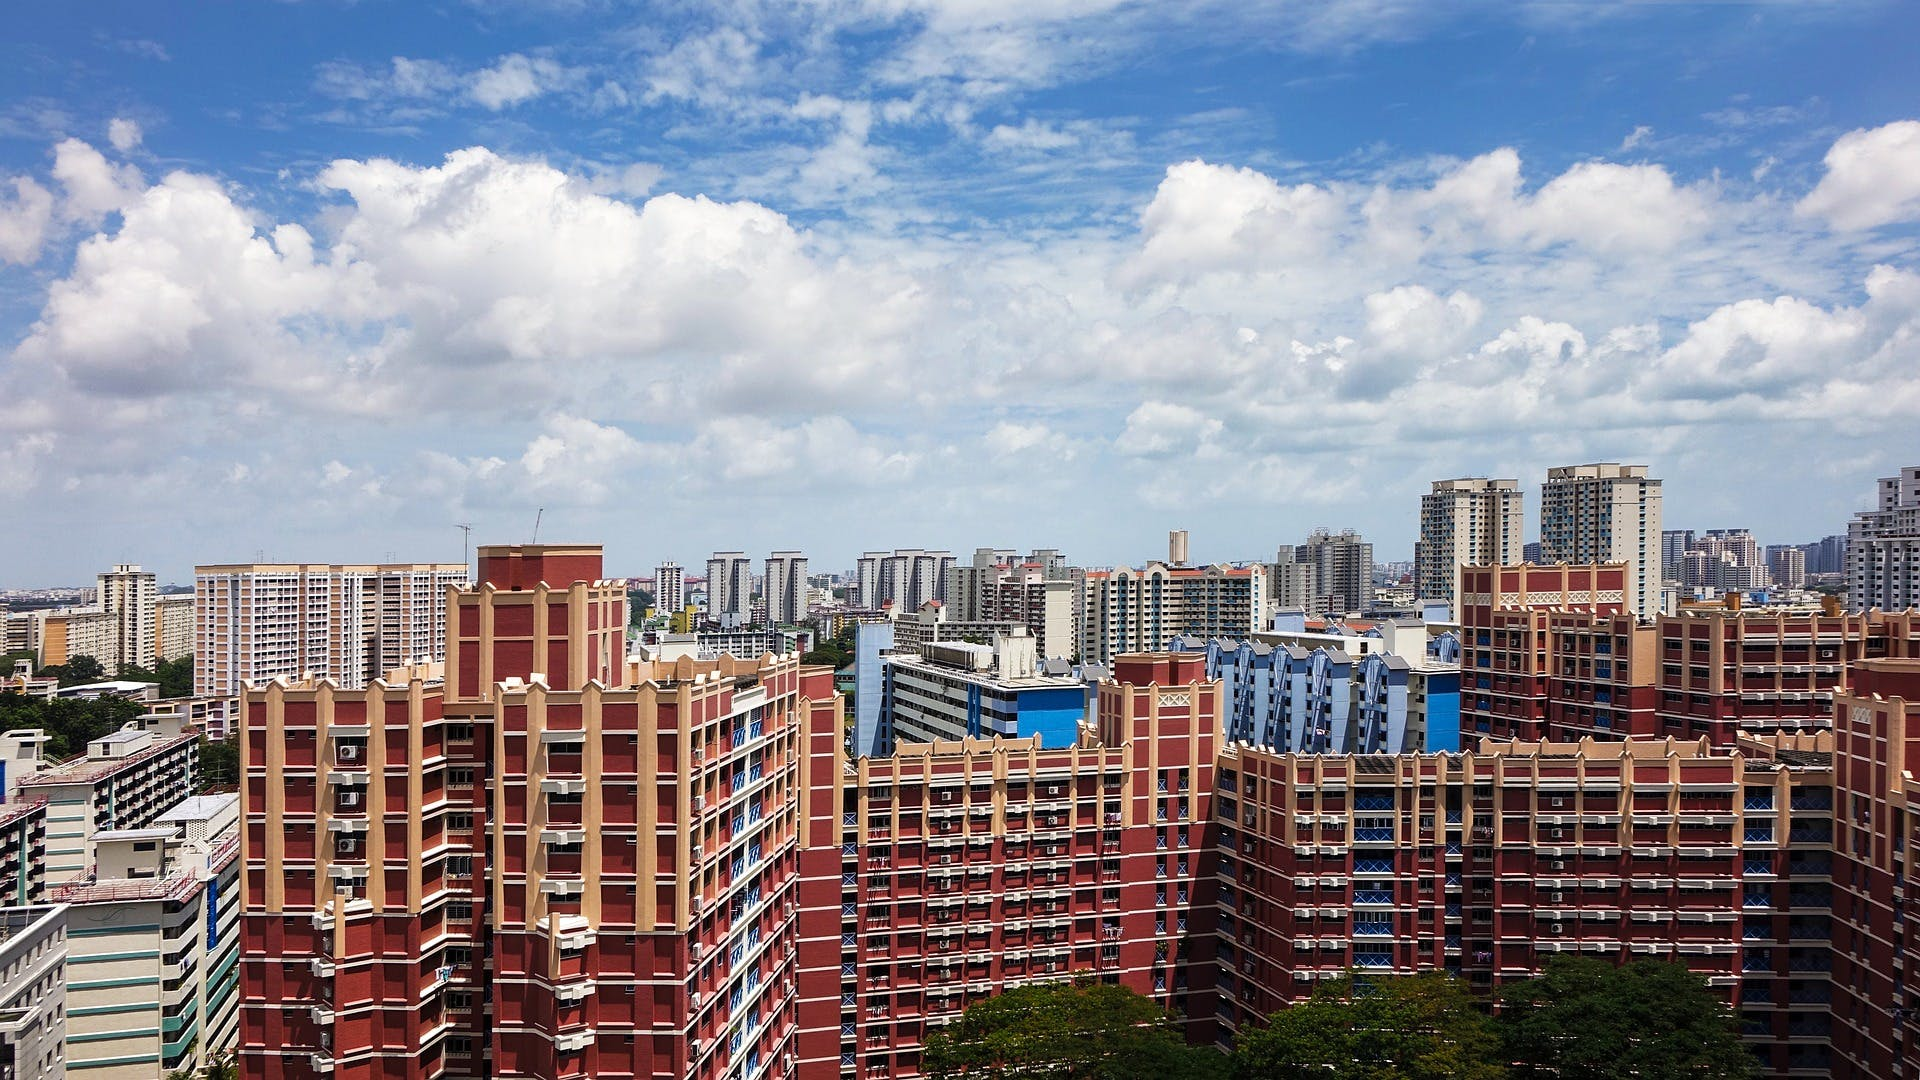 Bird's eye view of HDB flats